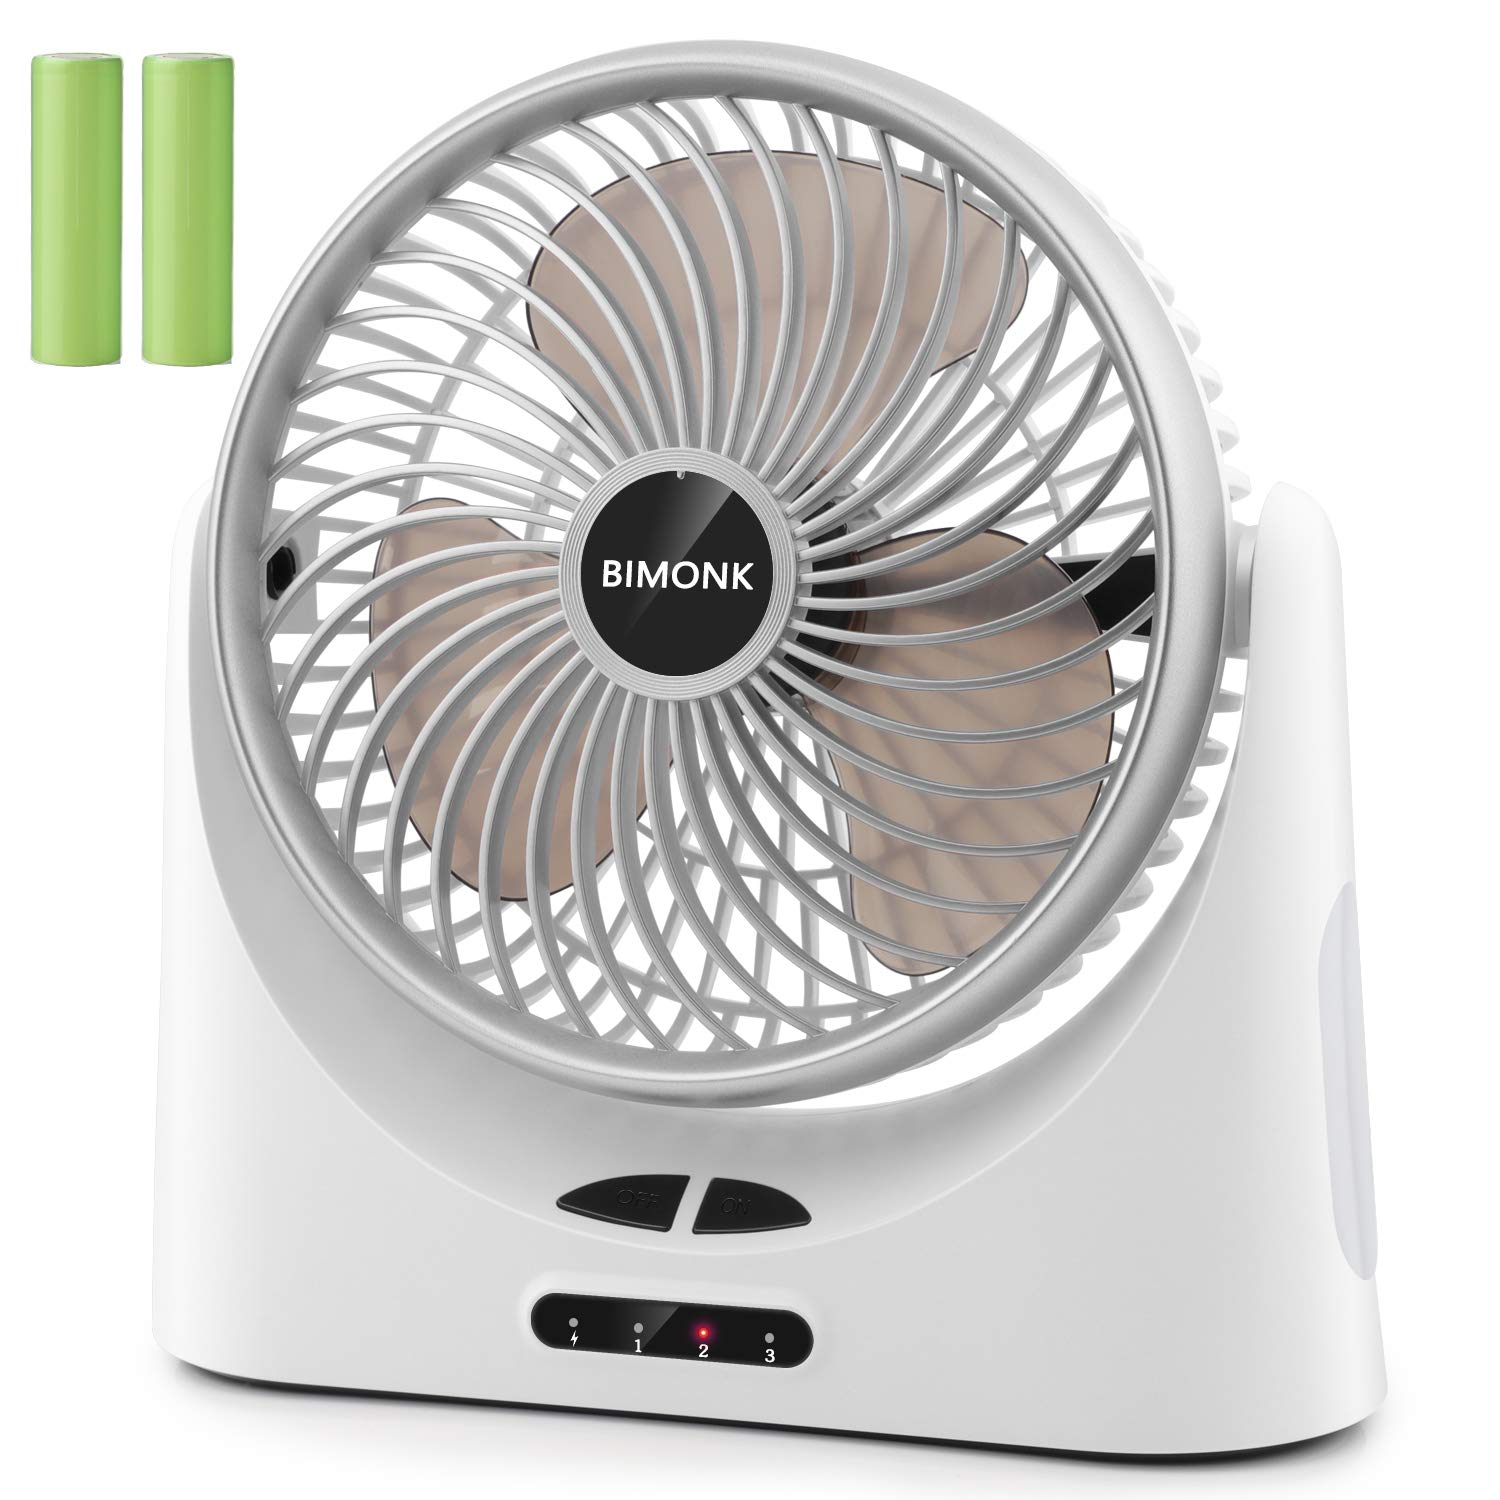 Bimonk Battery Operated Fan Rechargeable, Strong Airflow with 3 Speeds, Quiet Operation, Portable USB Desk Fans with 5-17 Running Hours, Side Light for Camping, Travel, Home, Office, Outdoor by BIMONK